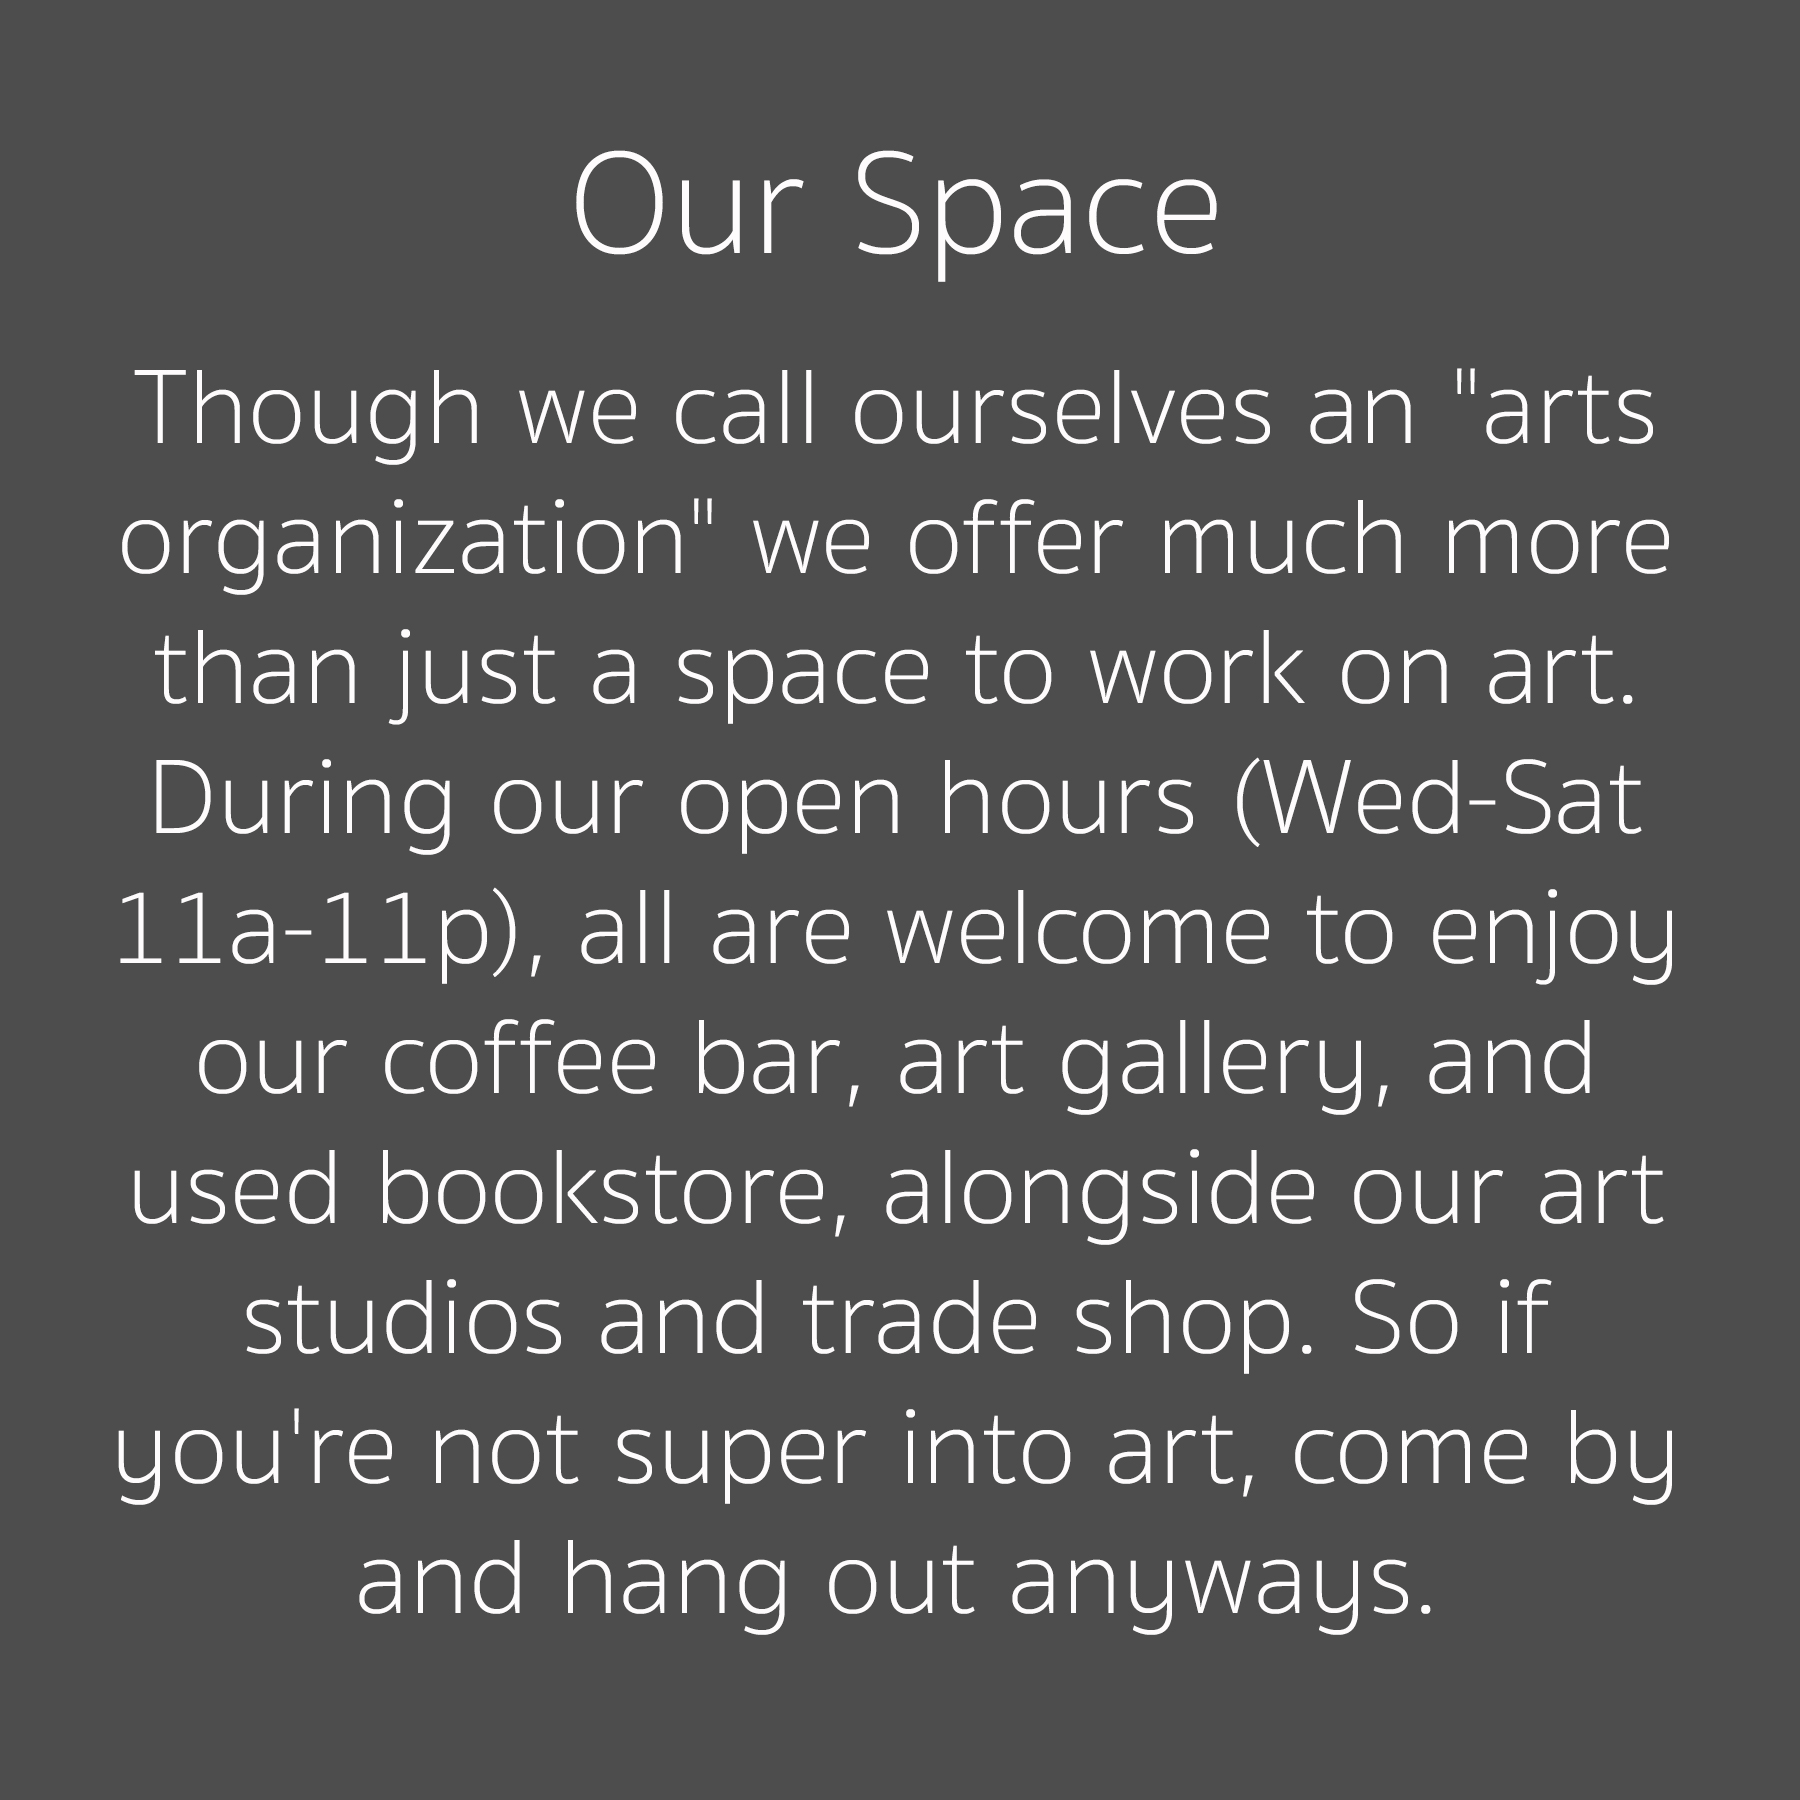 Our Space.jpg